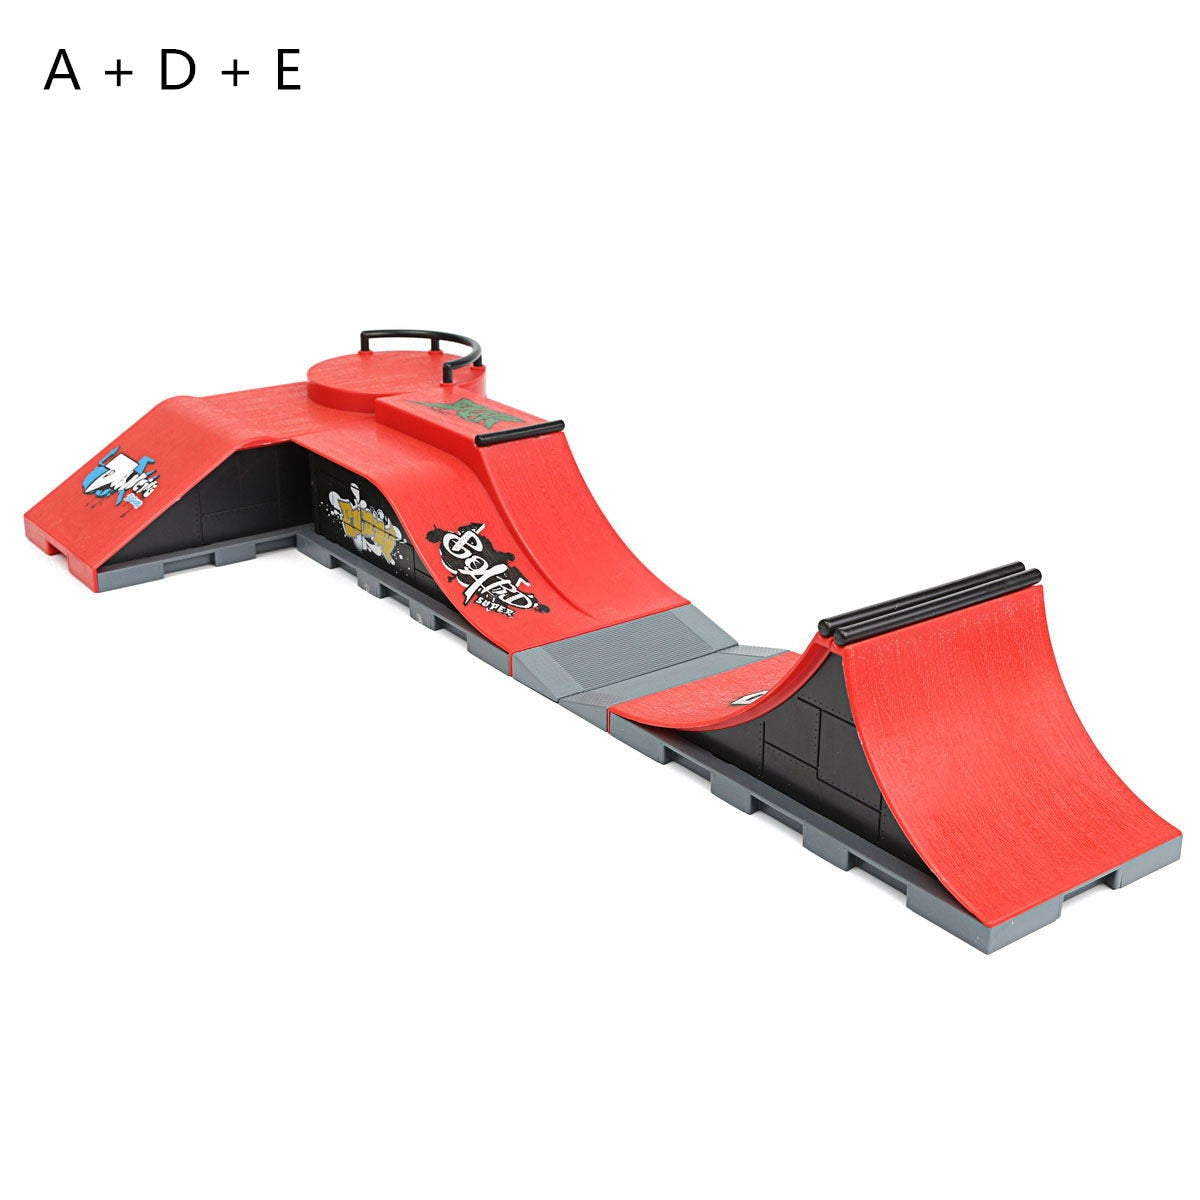 e8c99bba5f84 Fingerboard DIY A-F Site Skate Park Ramp Parts For Ultimate Parks Boys  Games Adult Novelty Items